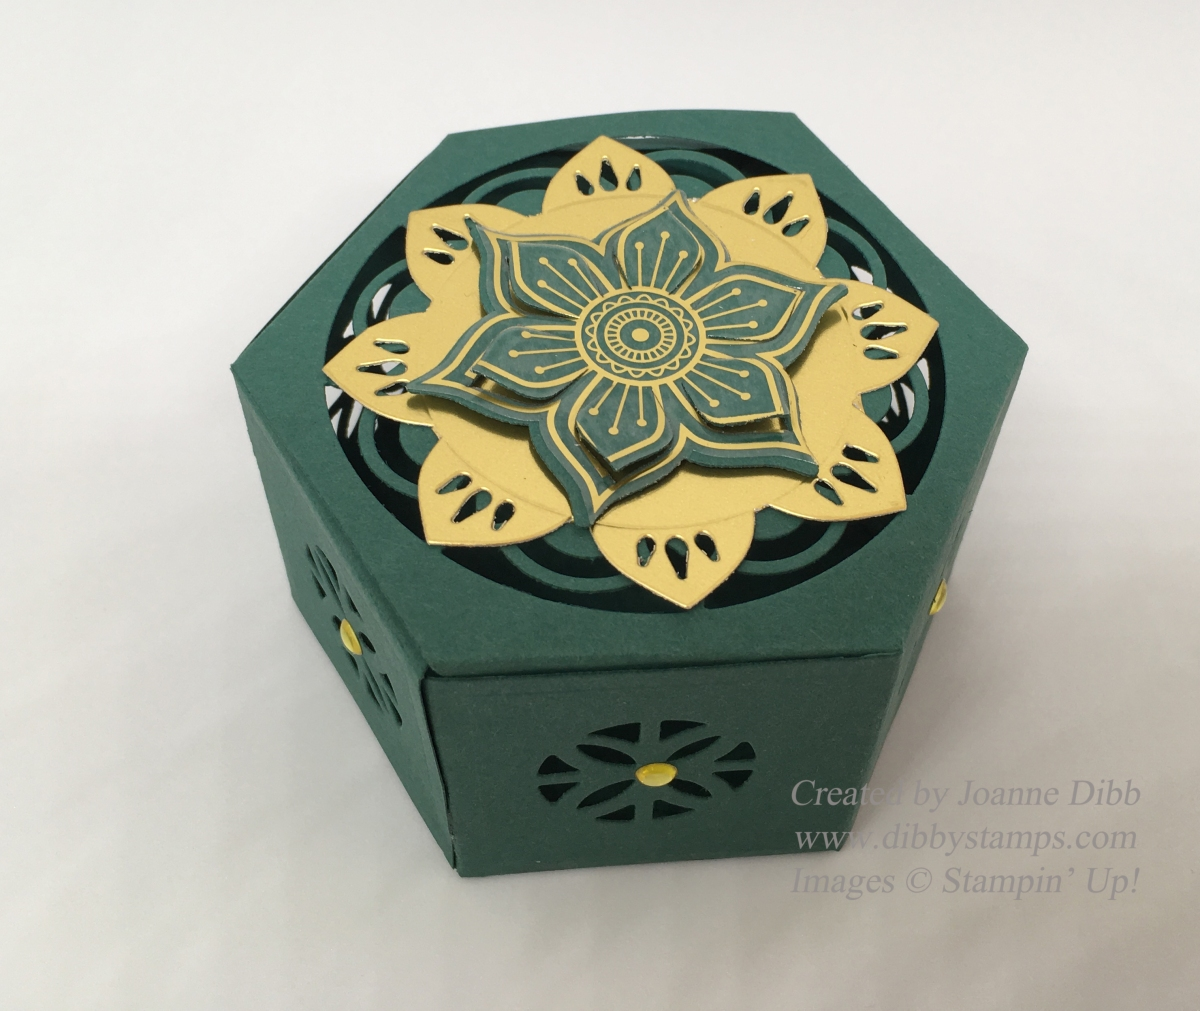 Eastern Palace Hexagonal Box